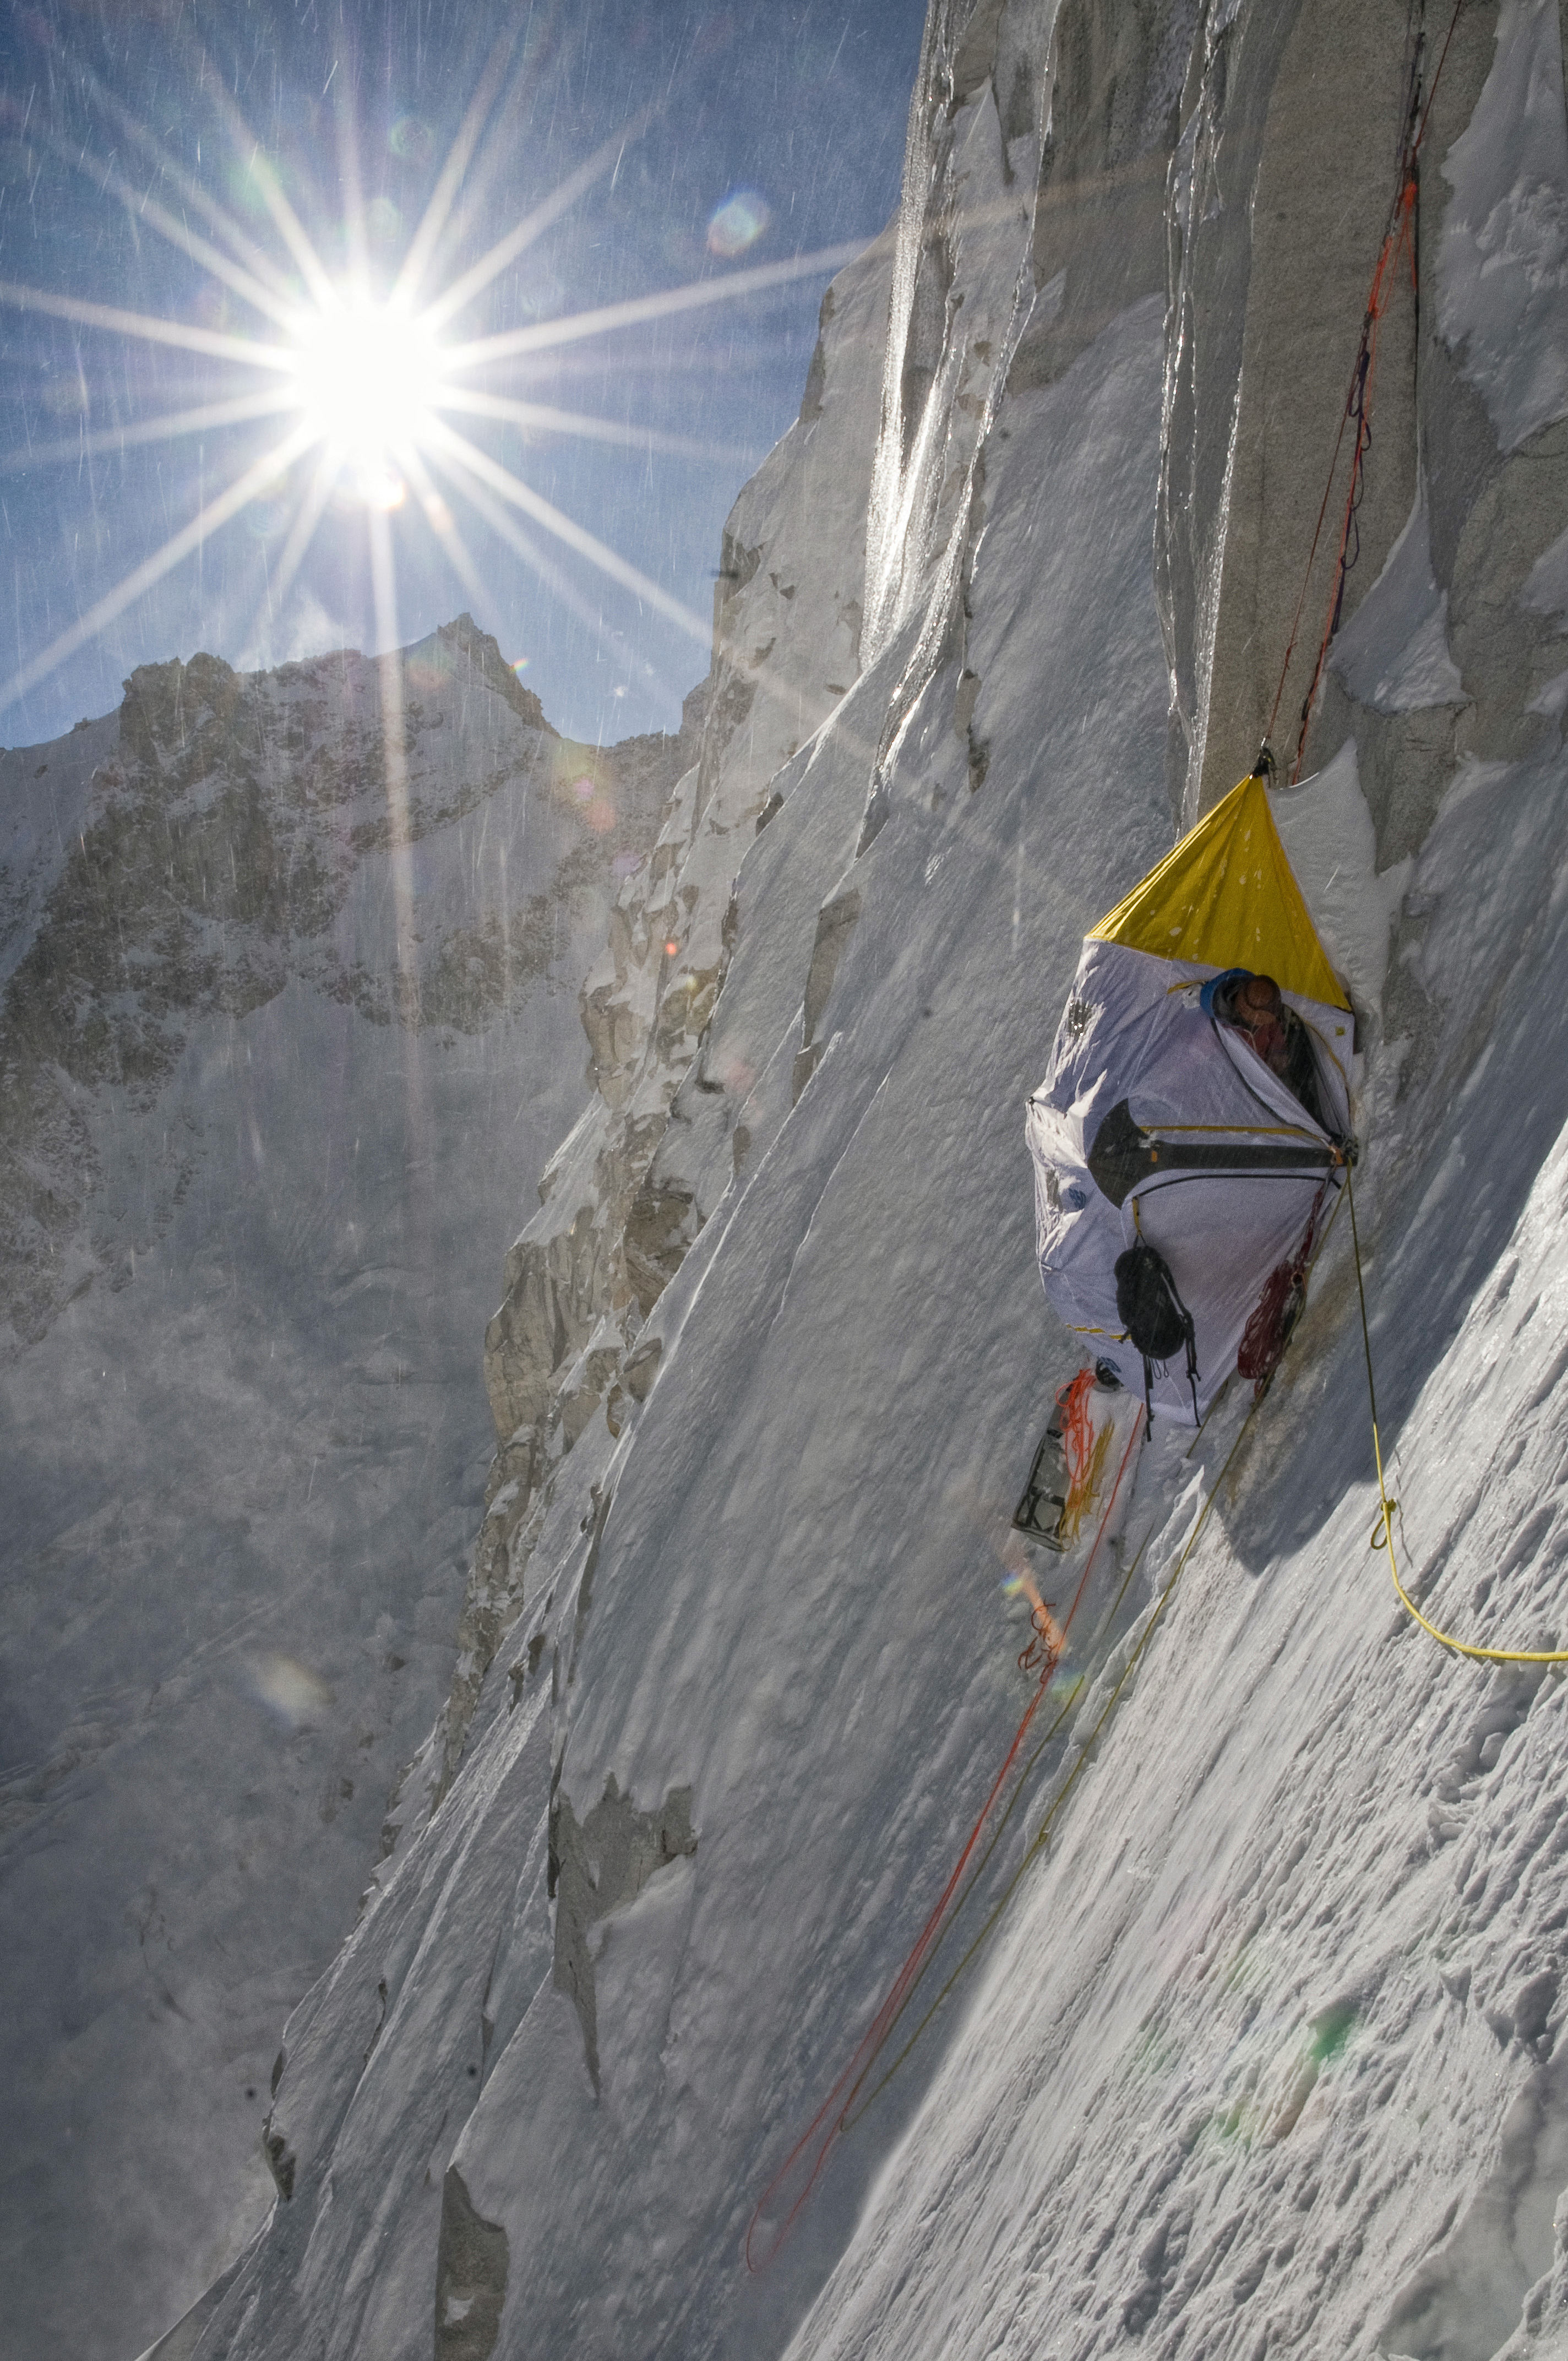 A portaledge camp at the base of the big wall on Meru. Photo: Jimmy Chin